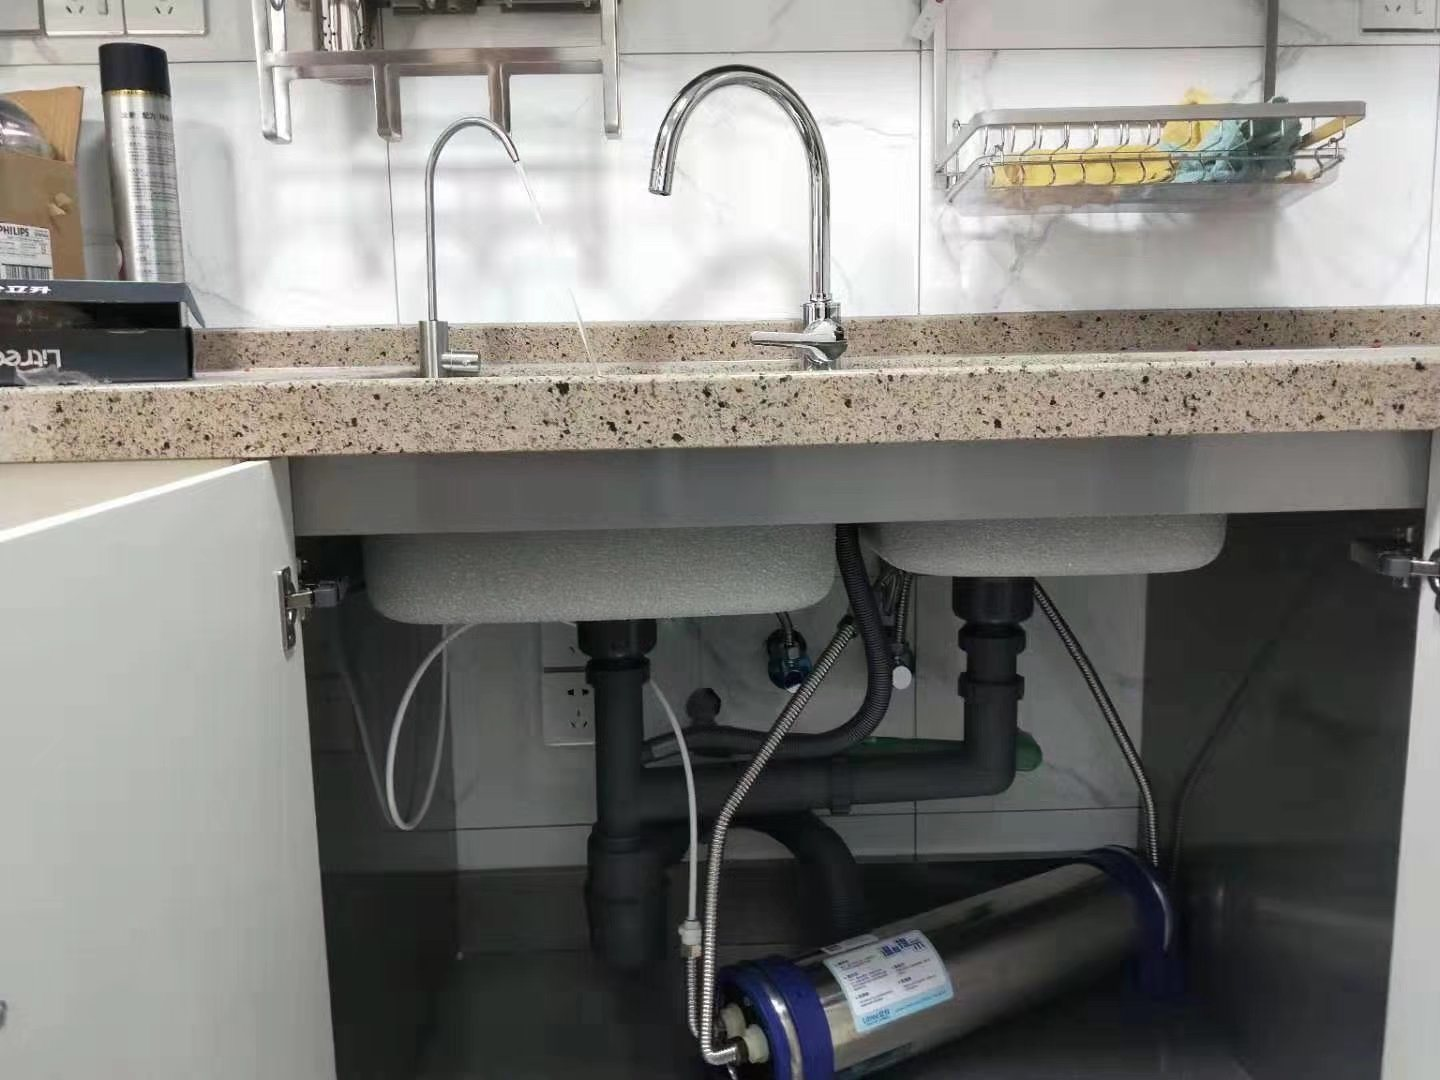 China Household Drink Water Filter Under Sink For Kitchen Photos